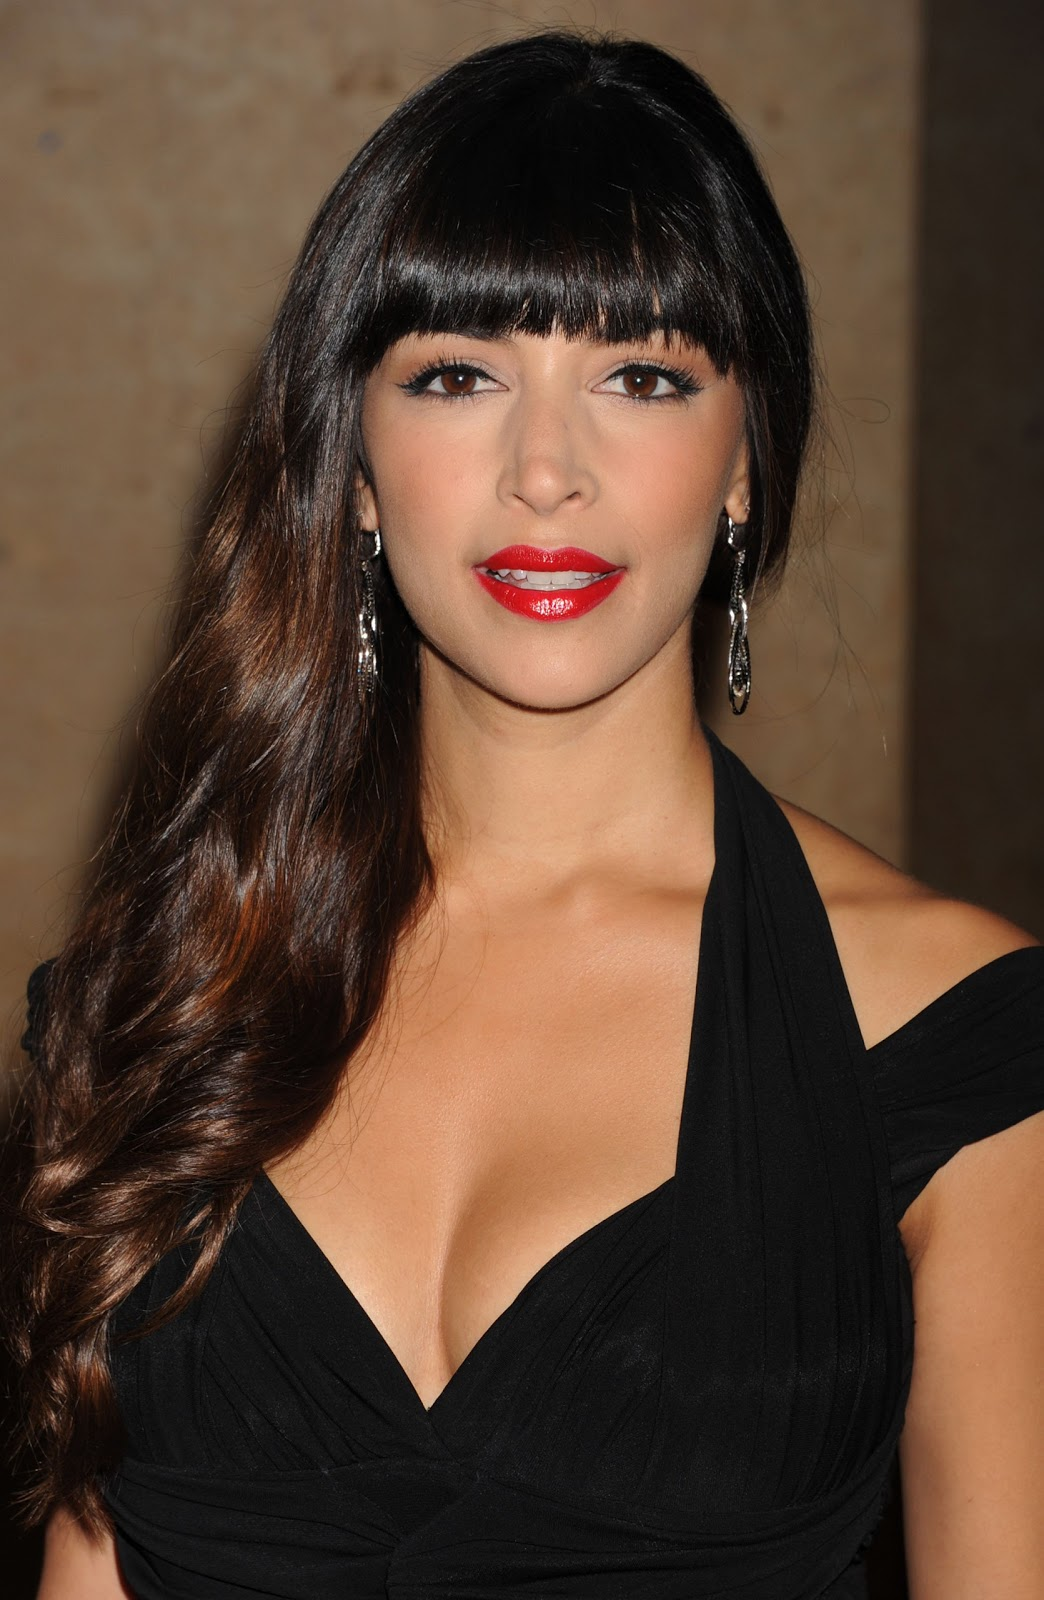 Hannah Simone Is A Canadian, Indian Descent Television Host, Actress